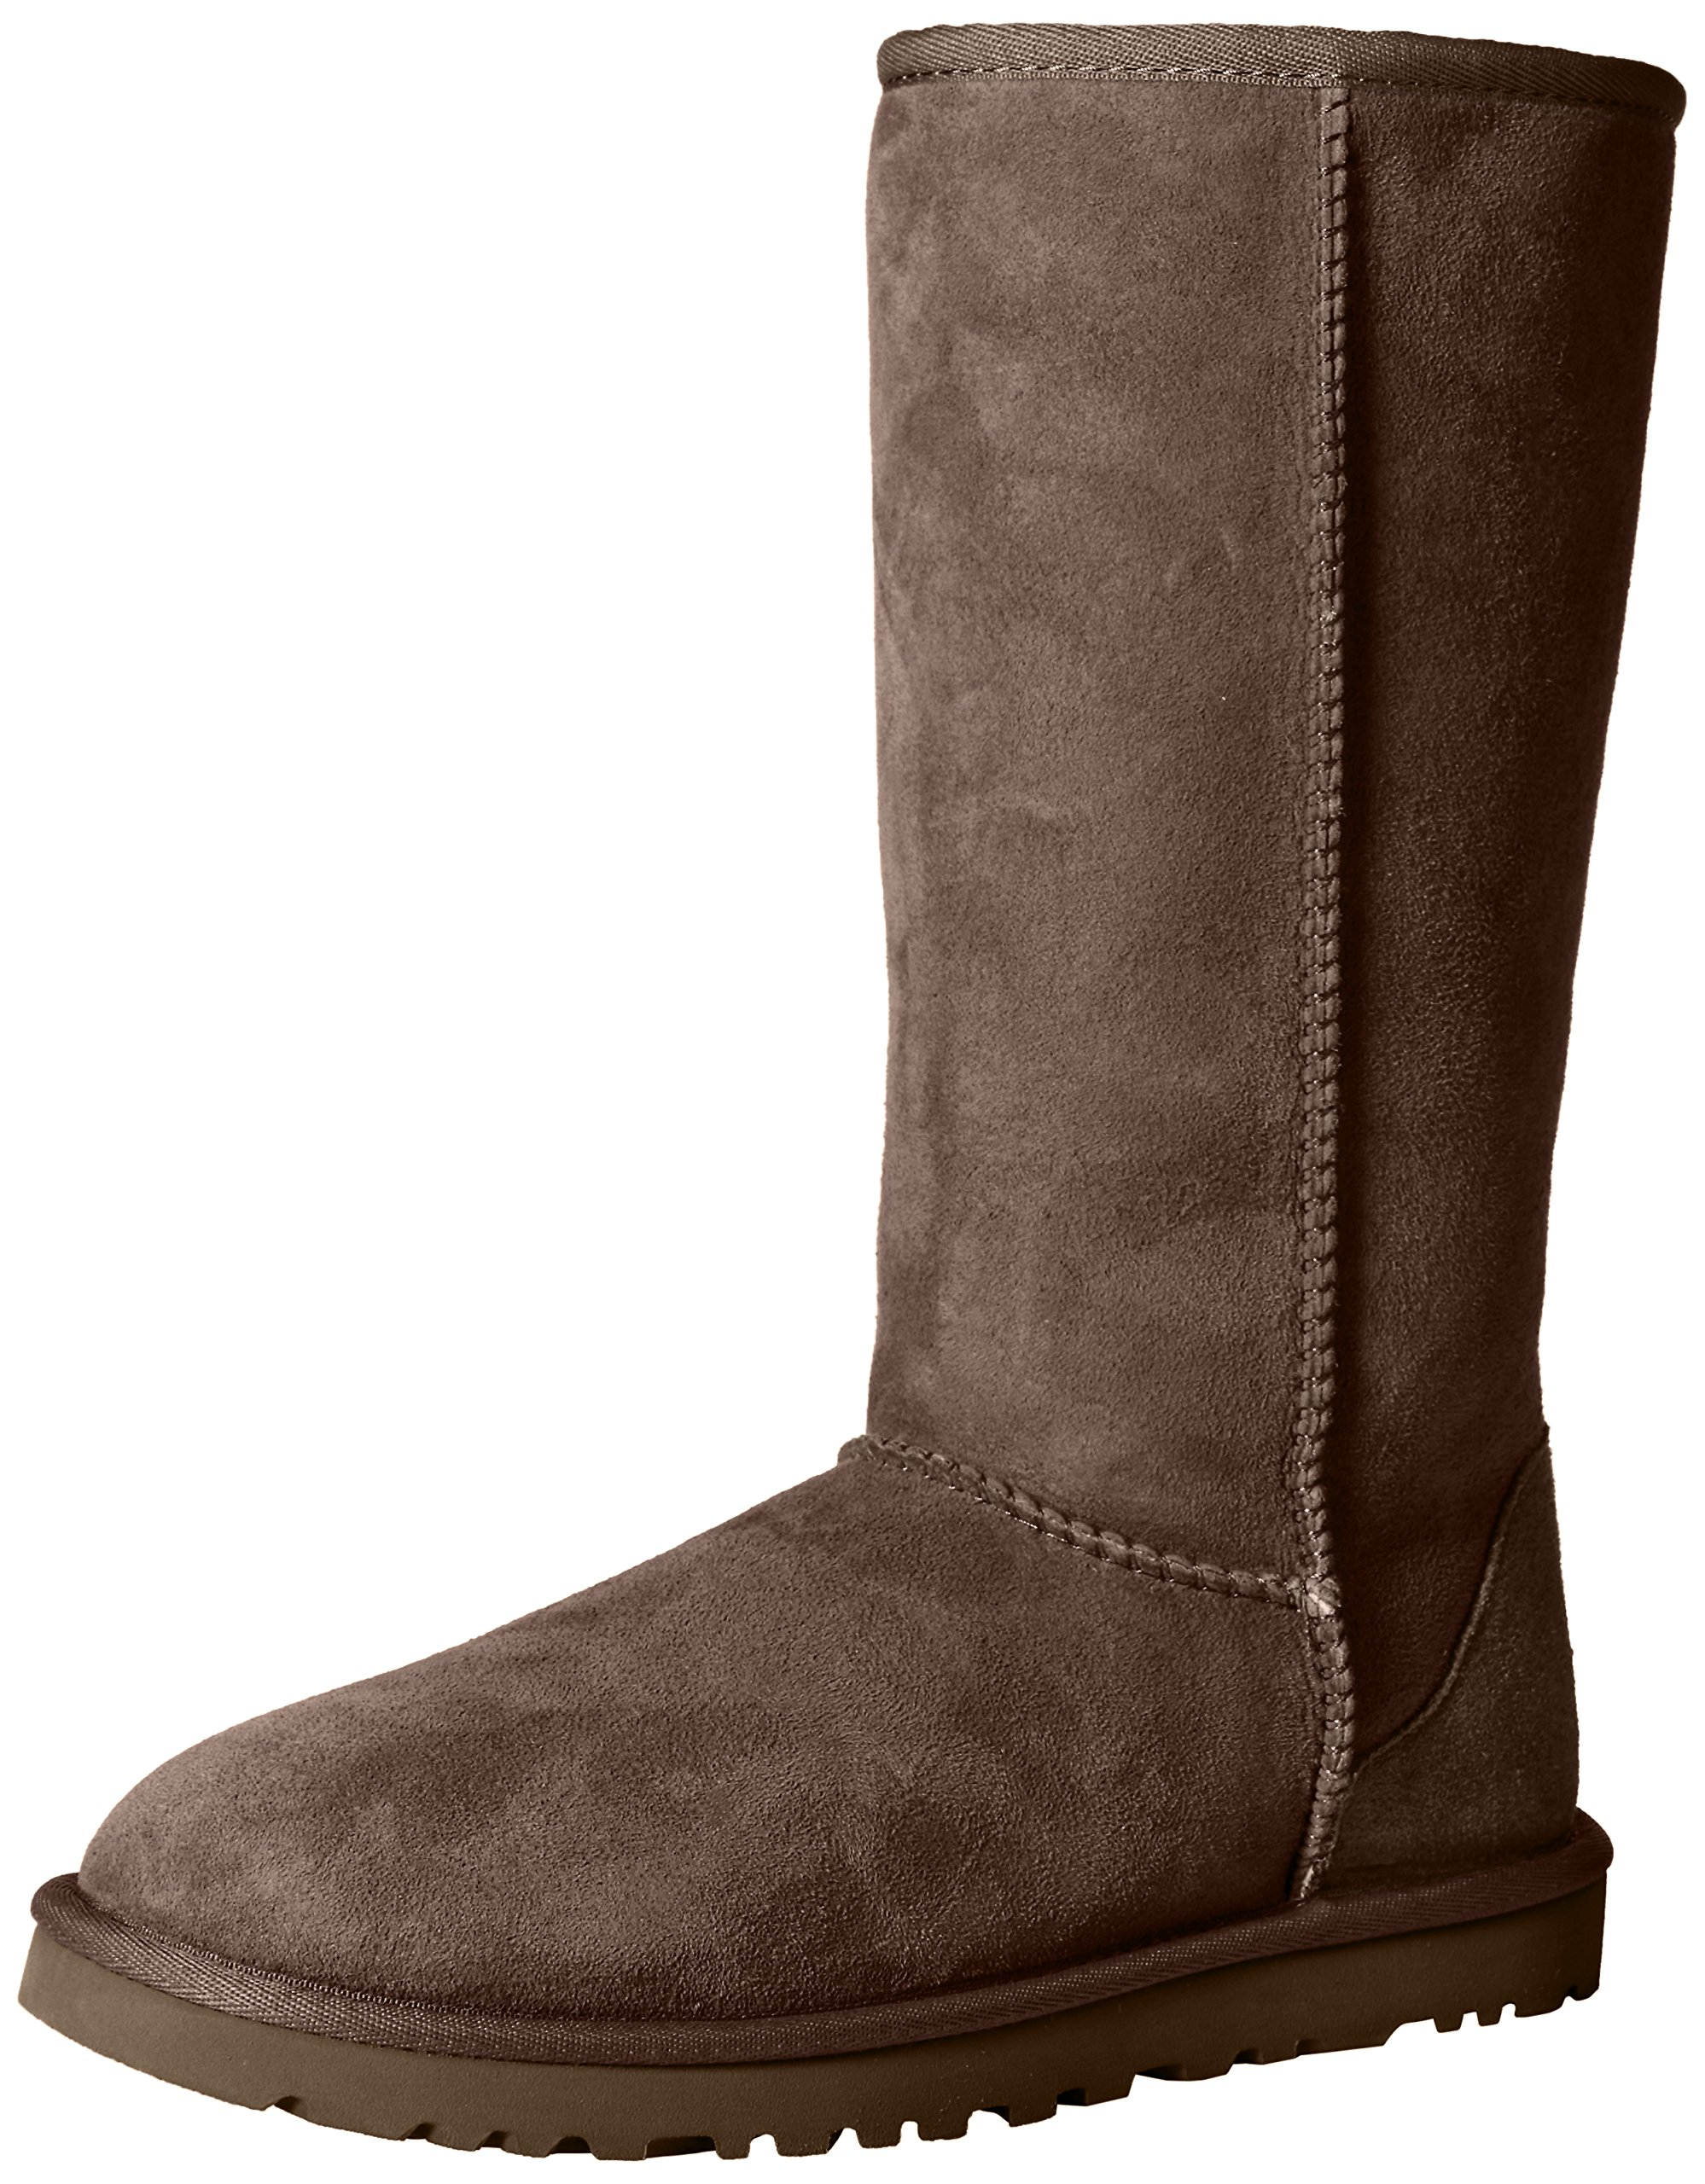 UGG Australia Women's Classic Tall Boots 7 m (US), Chocolate